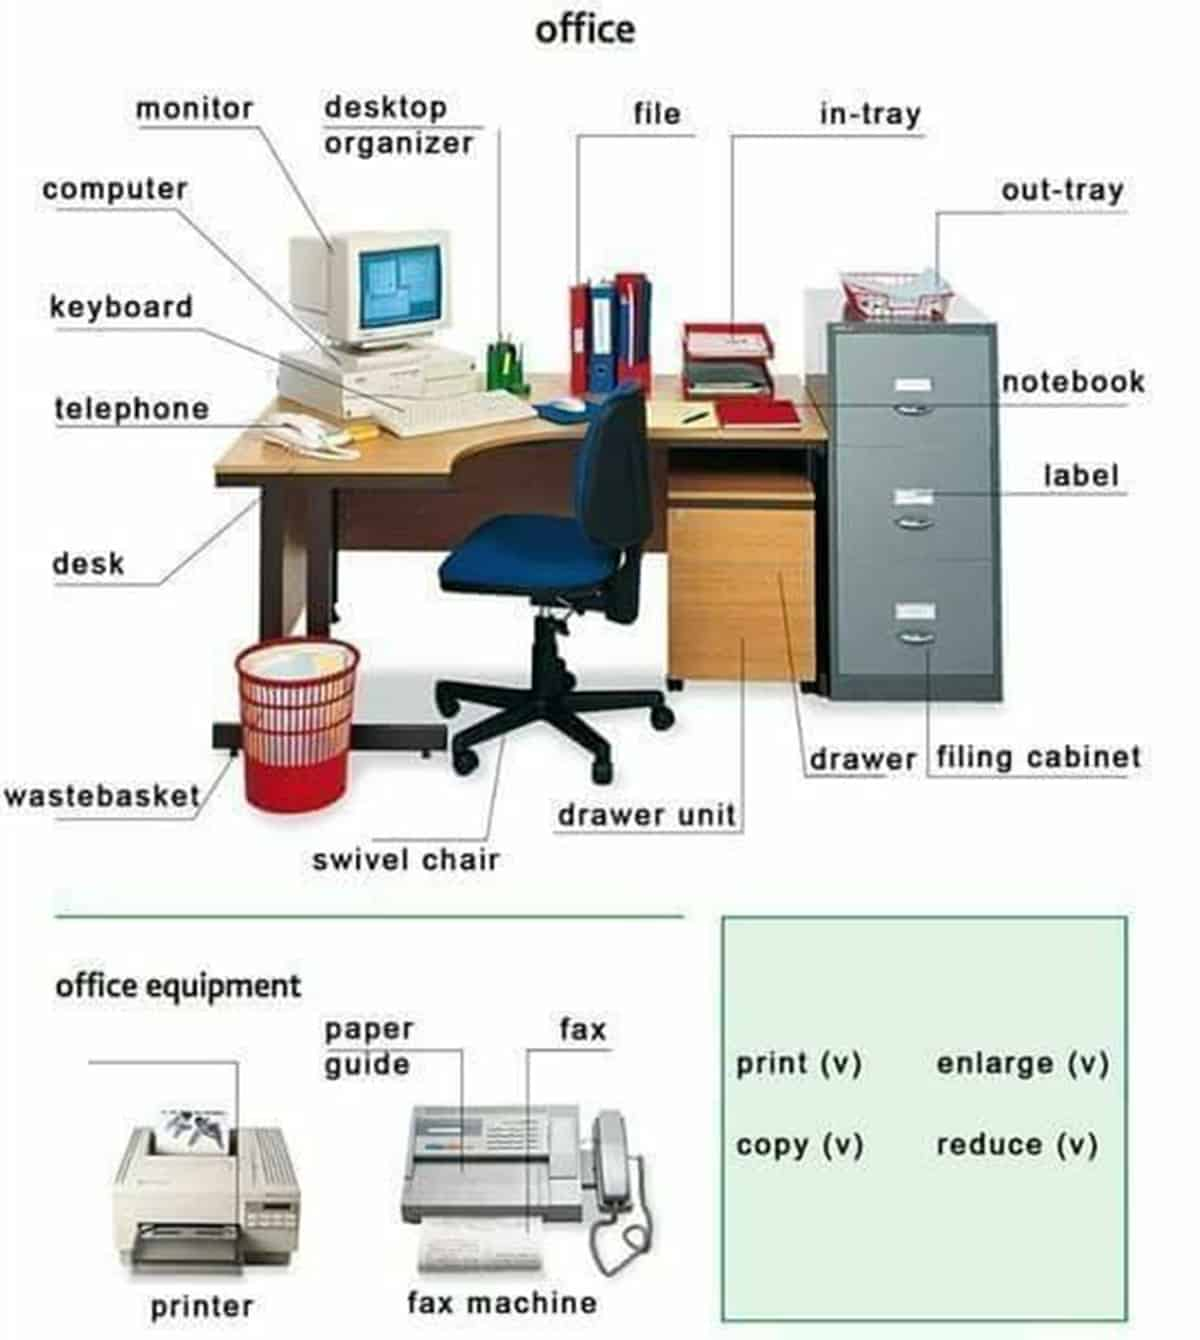 Tools, Equipment, Devices and Home Appliances Vocabulary: 300+ Items Illustrated 28